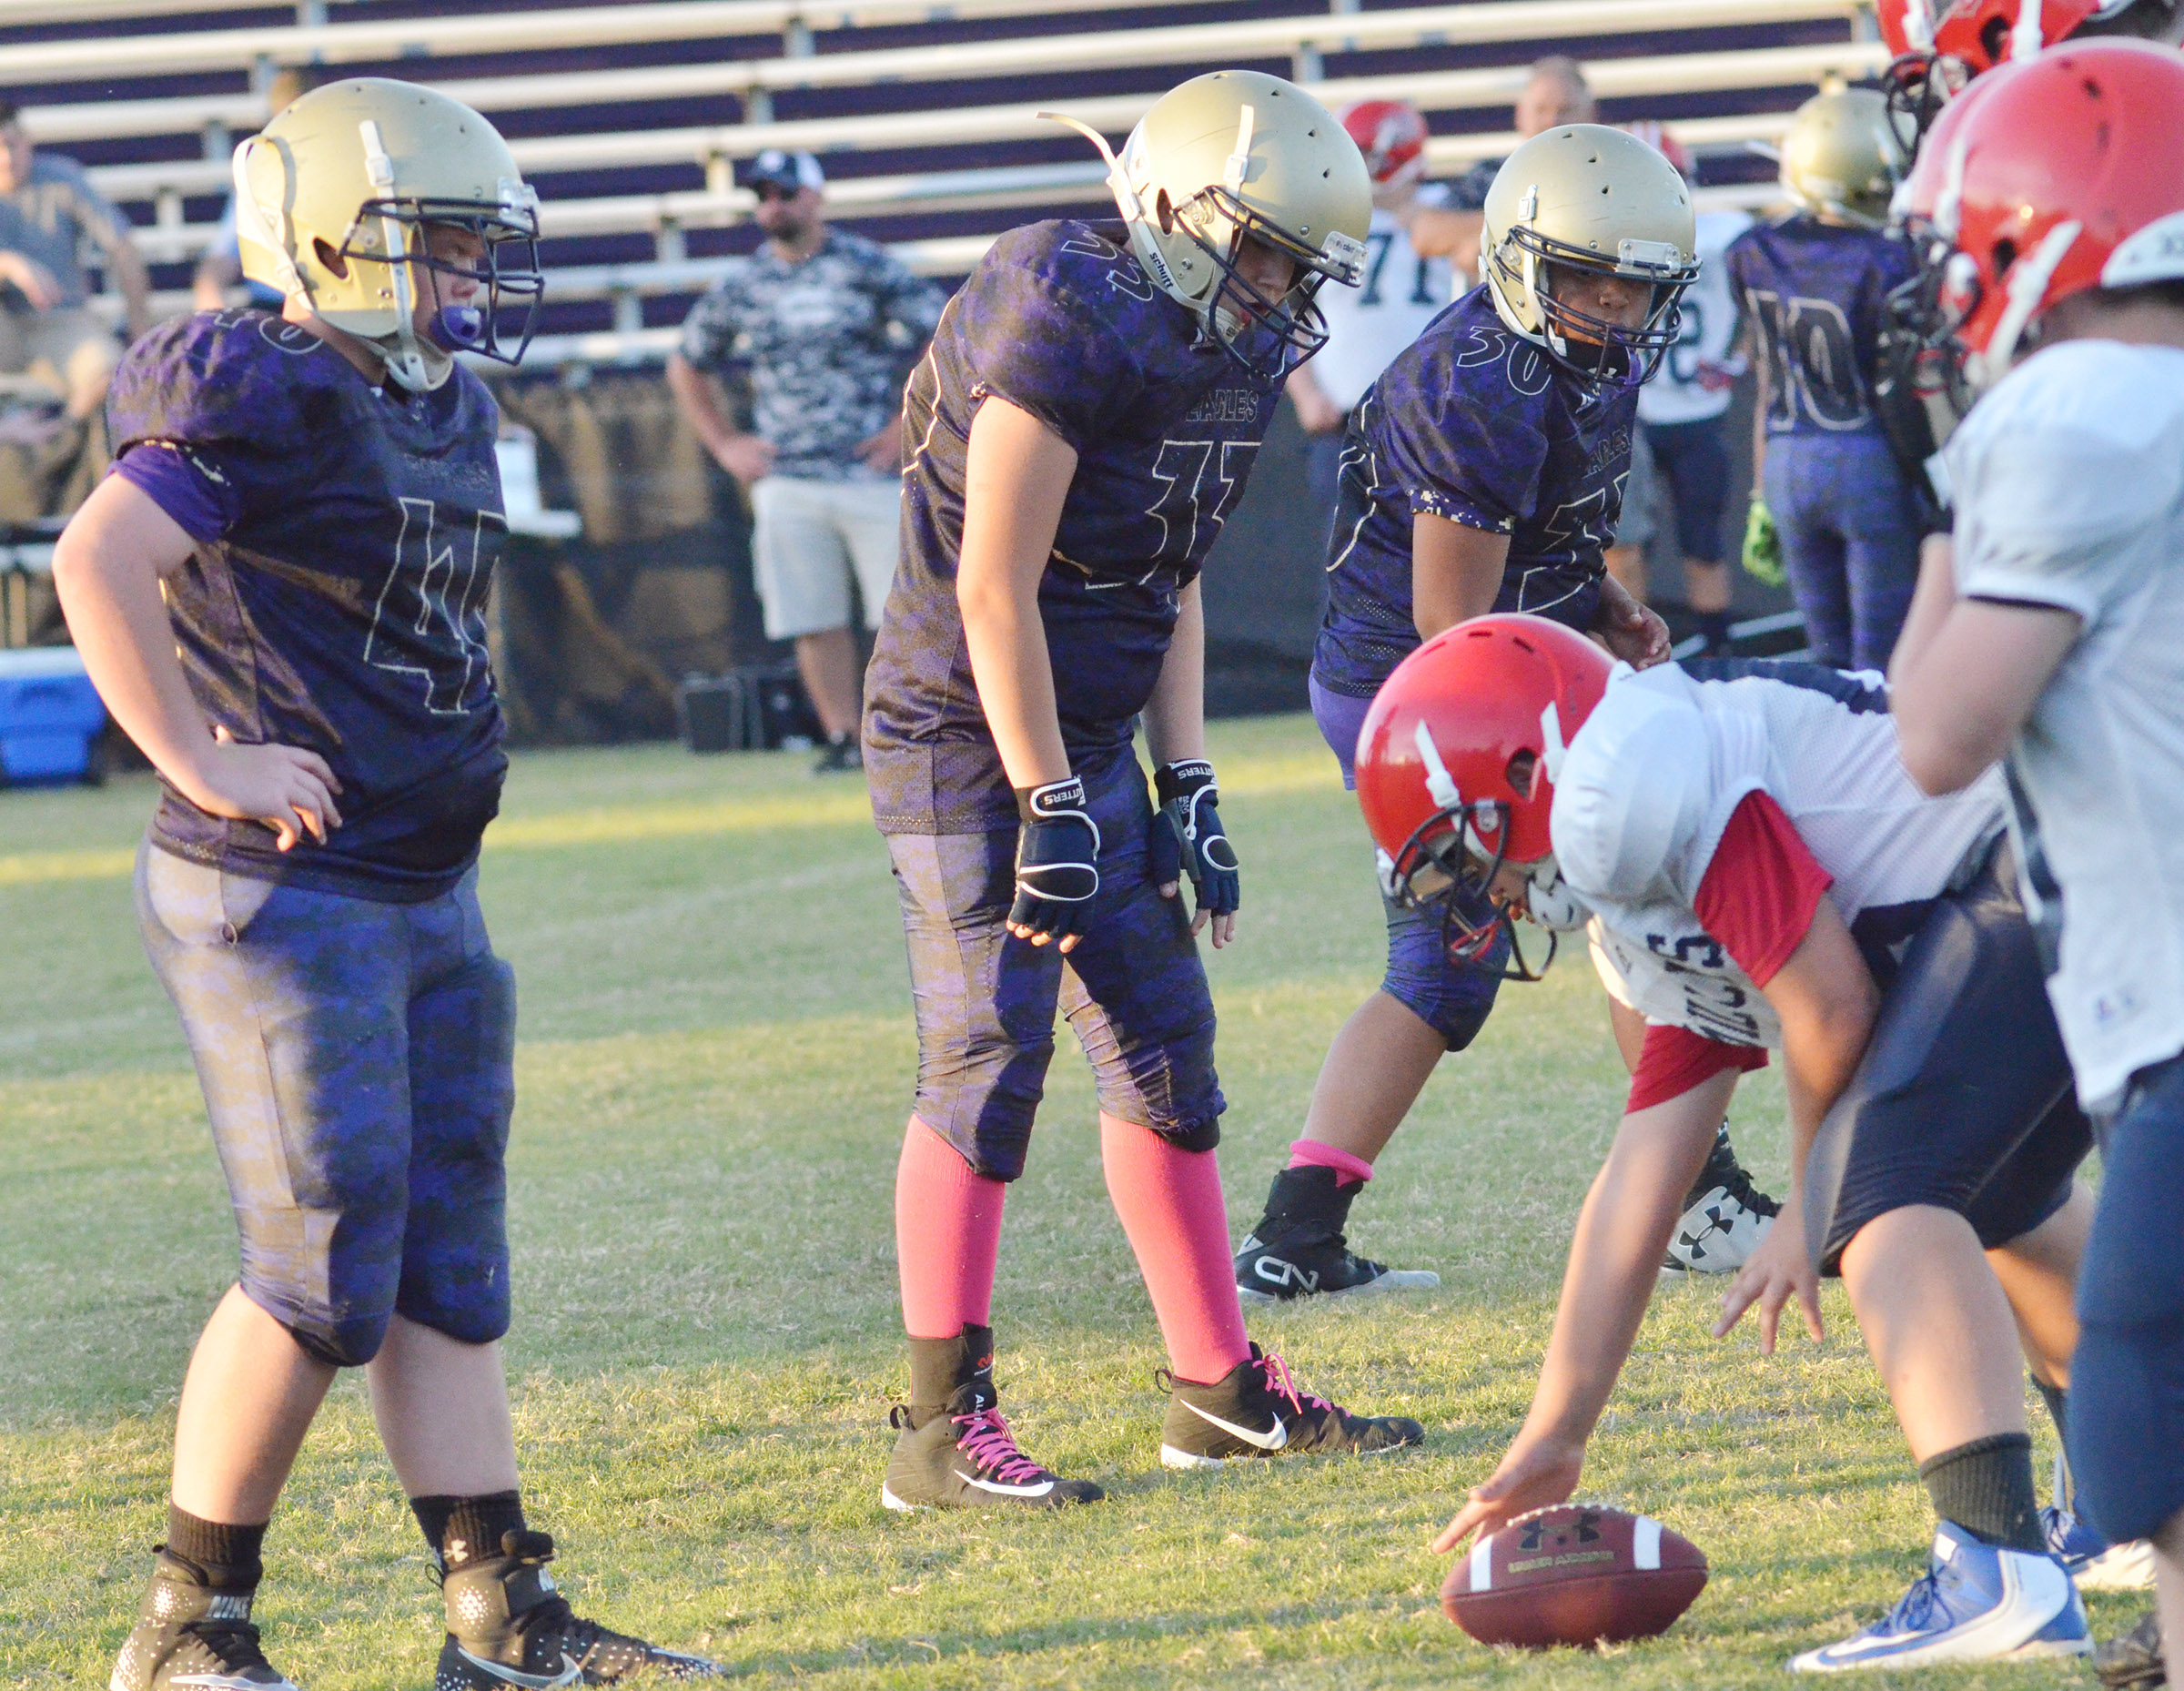 CMS seventh-grader Hayden Jones, at left, and his teammates get ready for the snap.